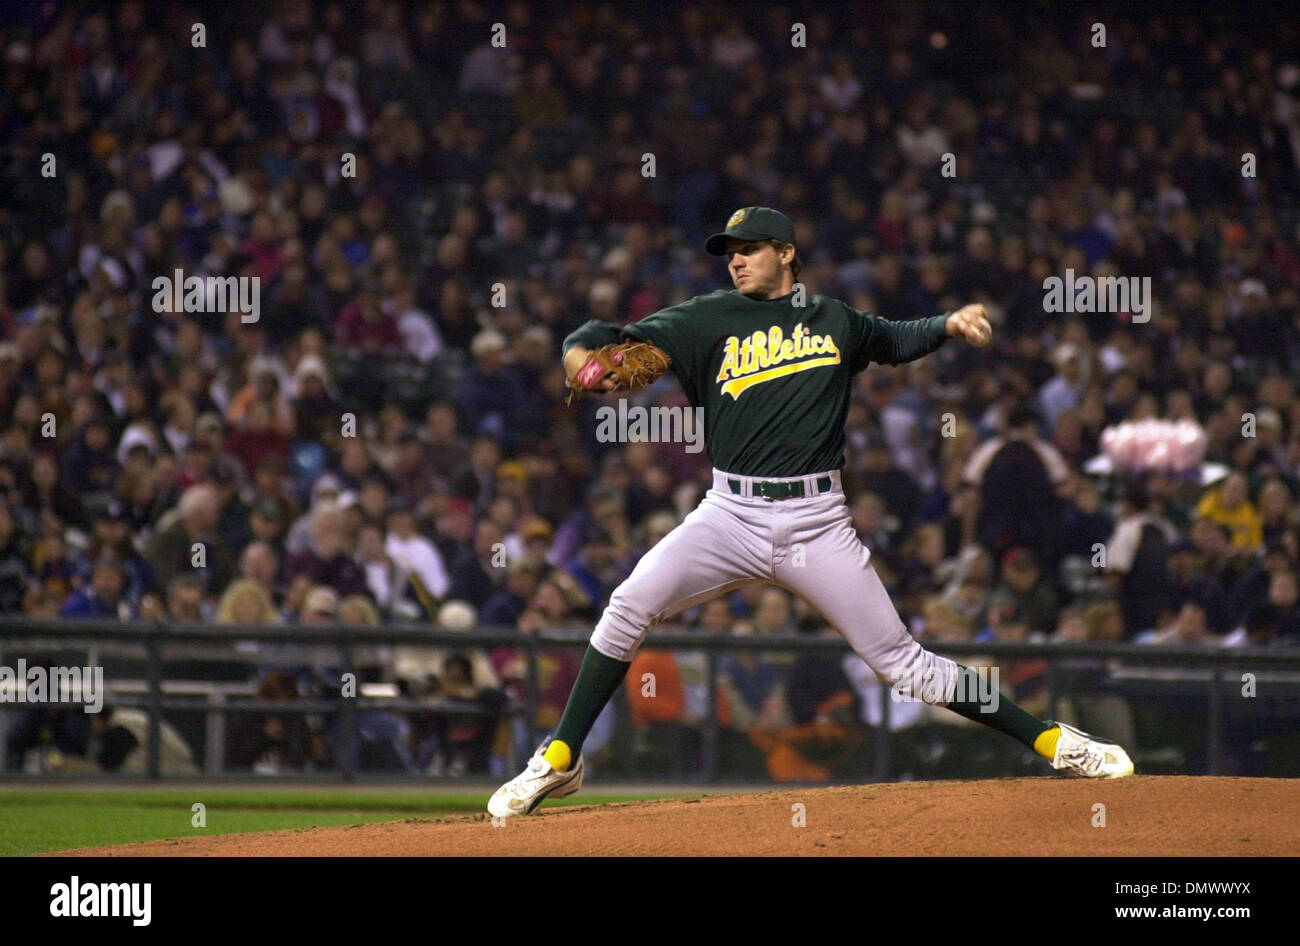 best service 026bc dffe1 Mar 29, 2002; San Francisco, CA, USA; Oakland A's pitcher ...